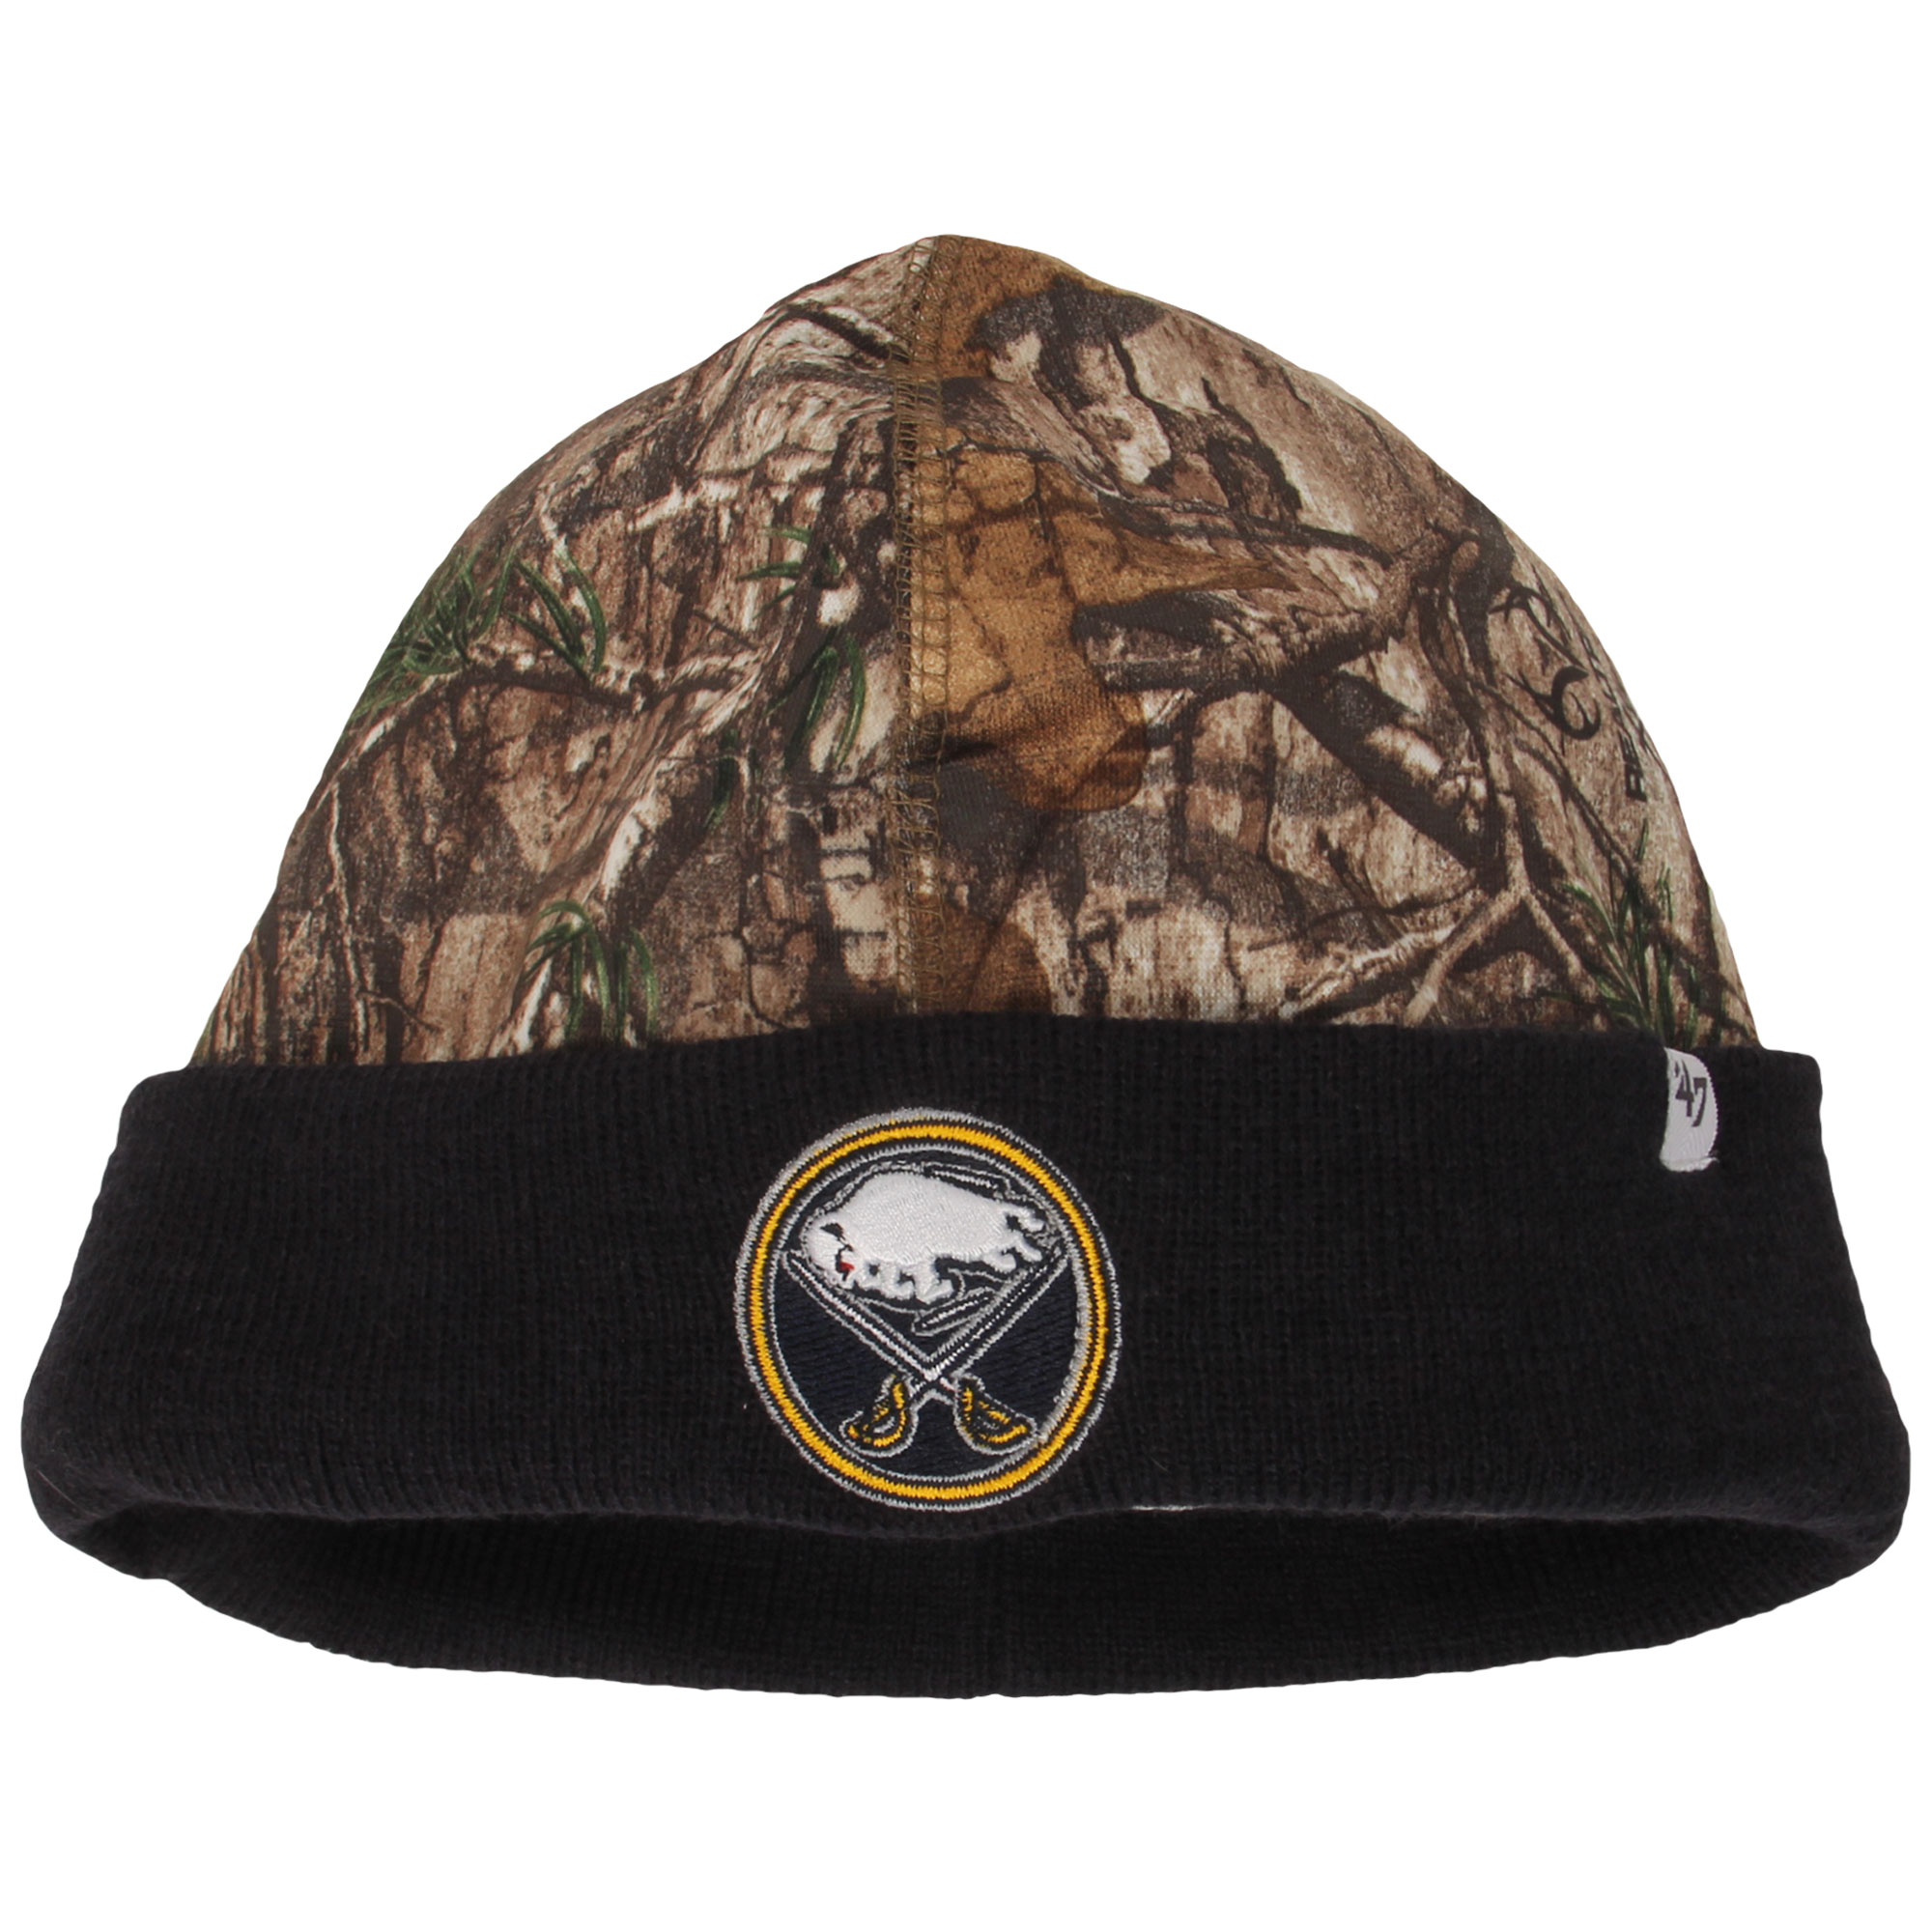 Buffalo Sabres '47 Real Tree Foxden Cuffed Knit Hat - Camo/Navy - OSFA